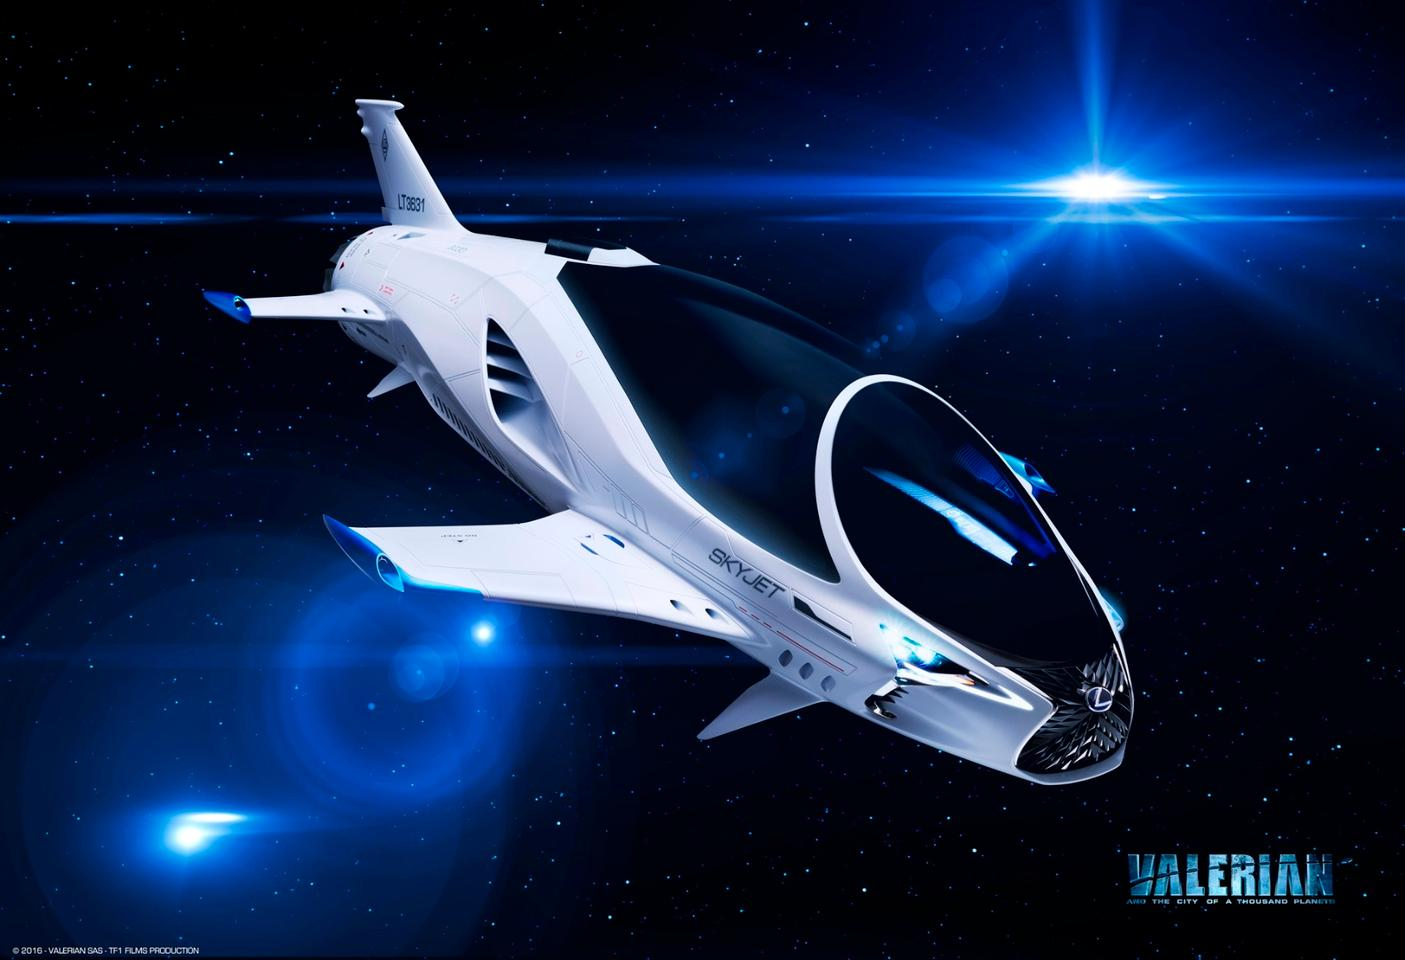 The SkyJet will feature in themovie Valerian and the City of a Thousand Planets